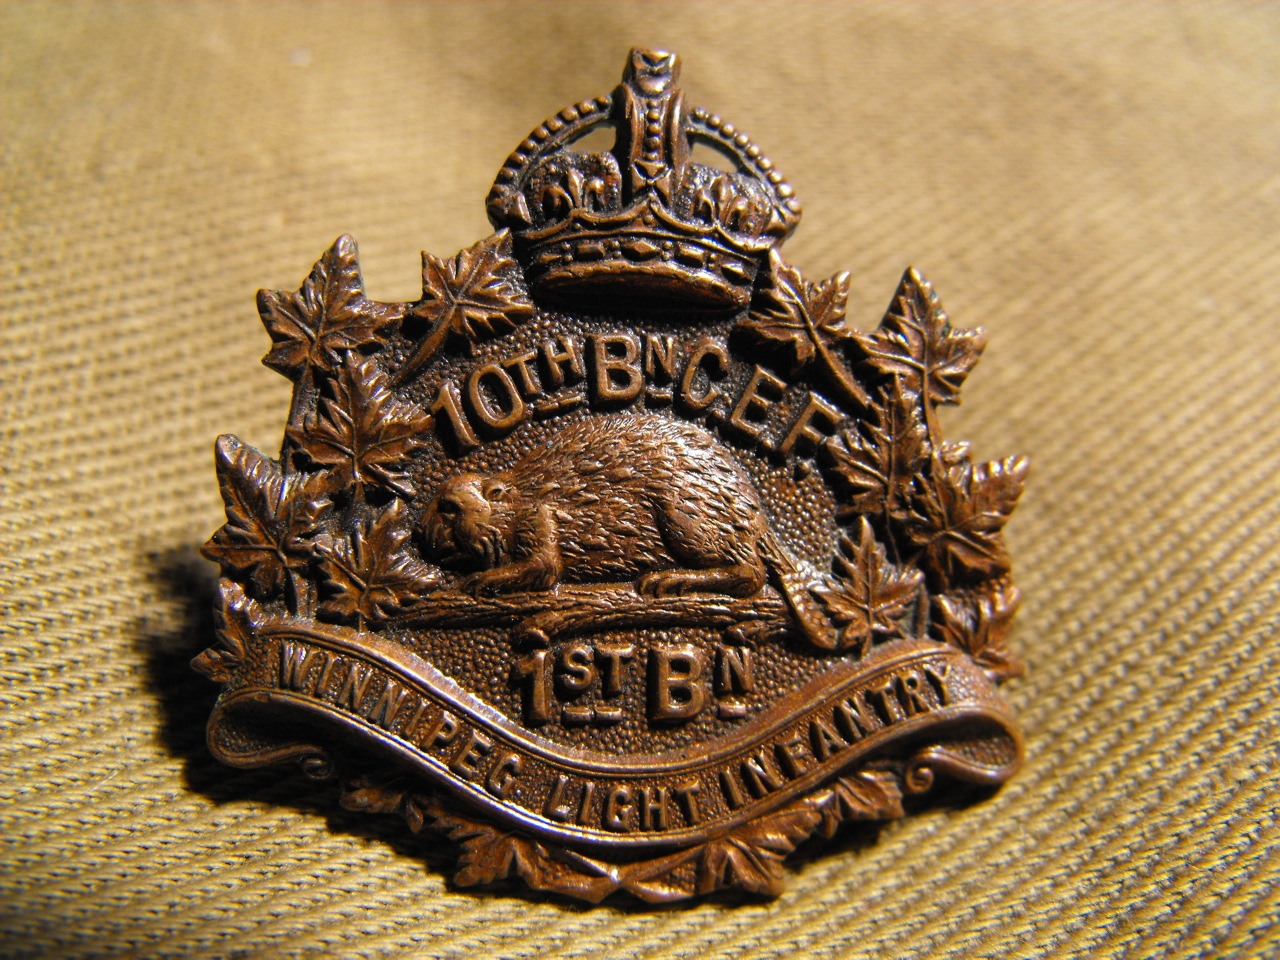 10th BN 1st BN Winnipeg, Alberta Collar Dog